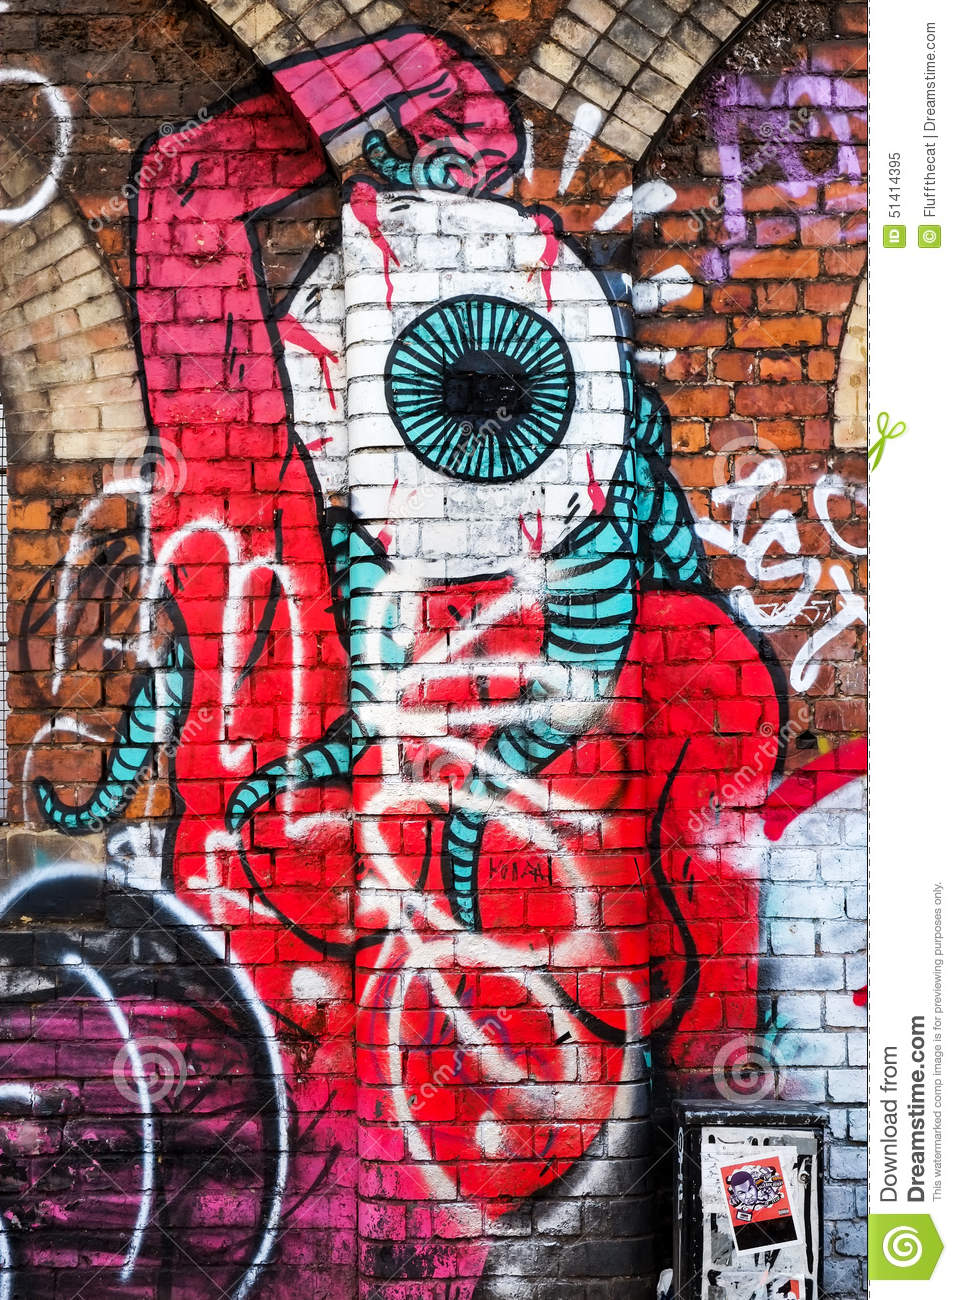 Abstract monster creature with very large eye for its head shoreditch london uk